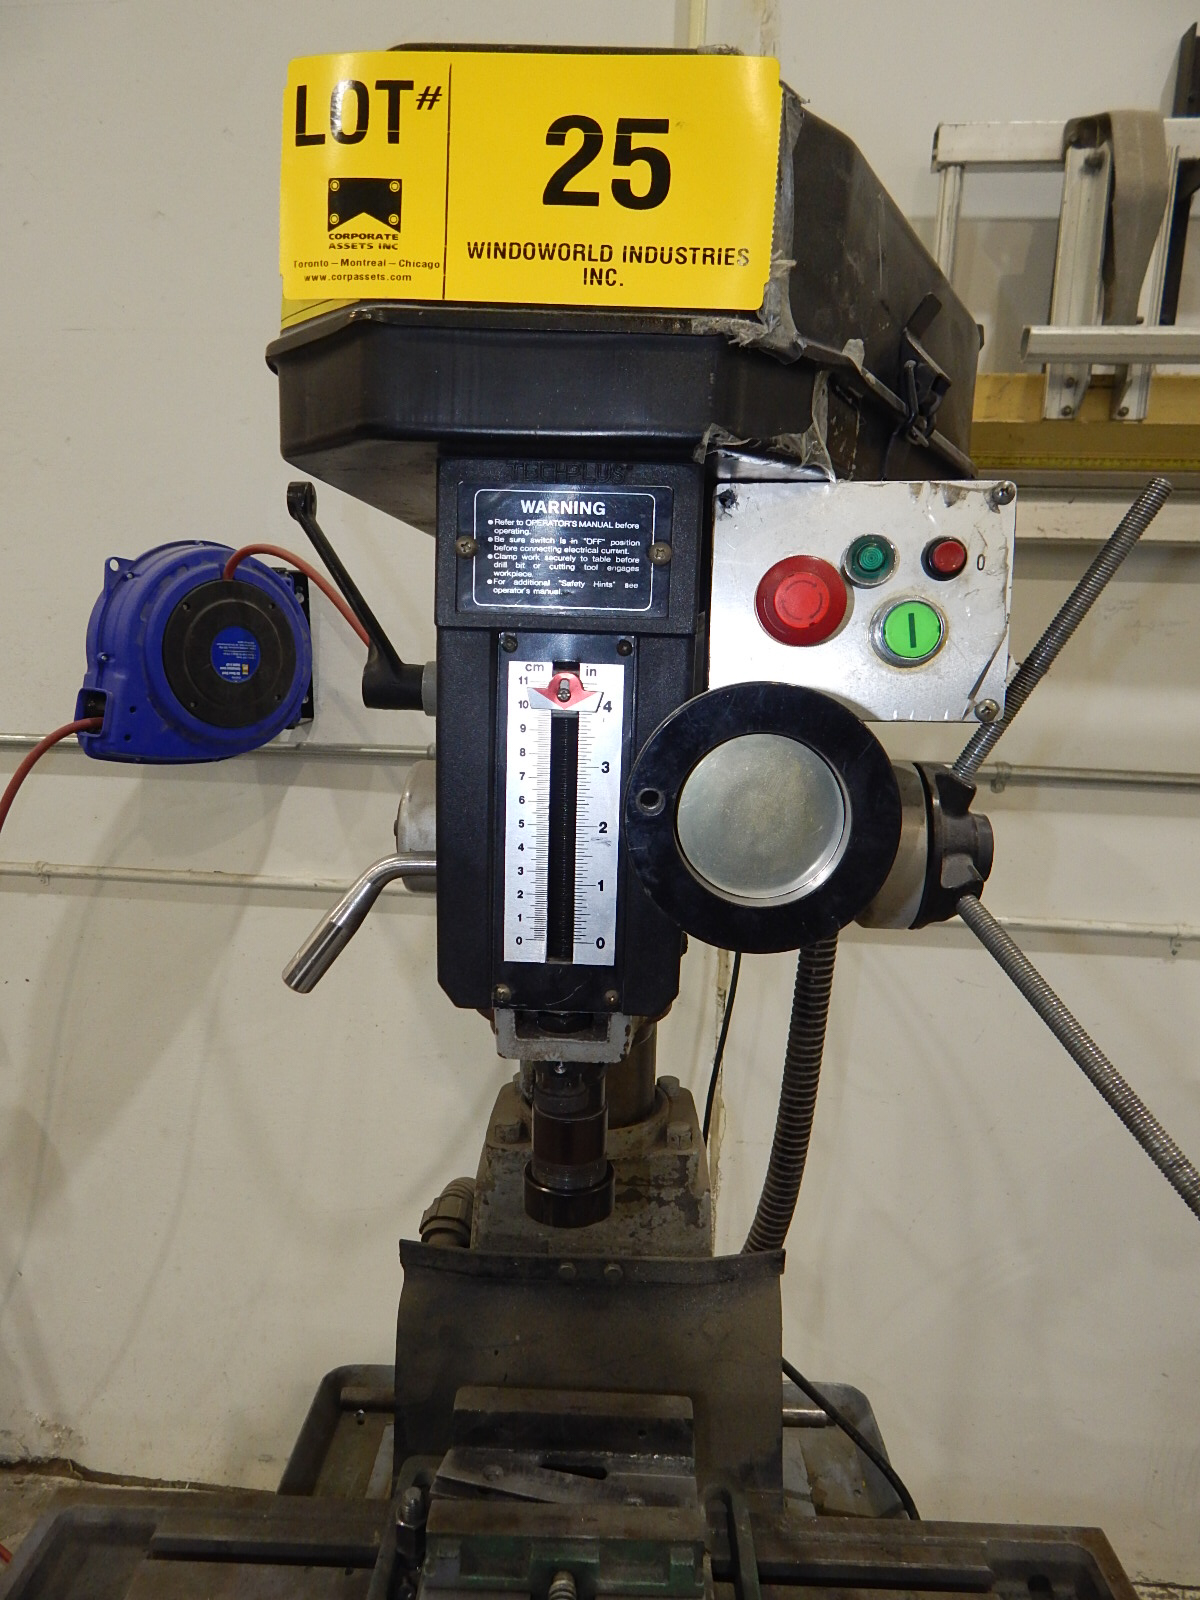 TECHPLUS BENCH TYPE MILLING MACHINE WITH SPEEDS UP TO 2150 RPM S/N: N/A (CI) - Image 5 of 5